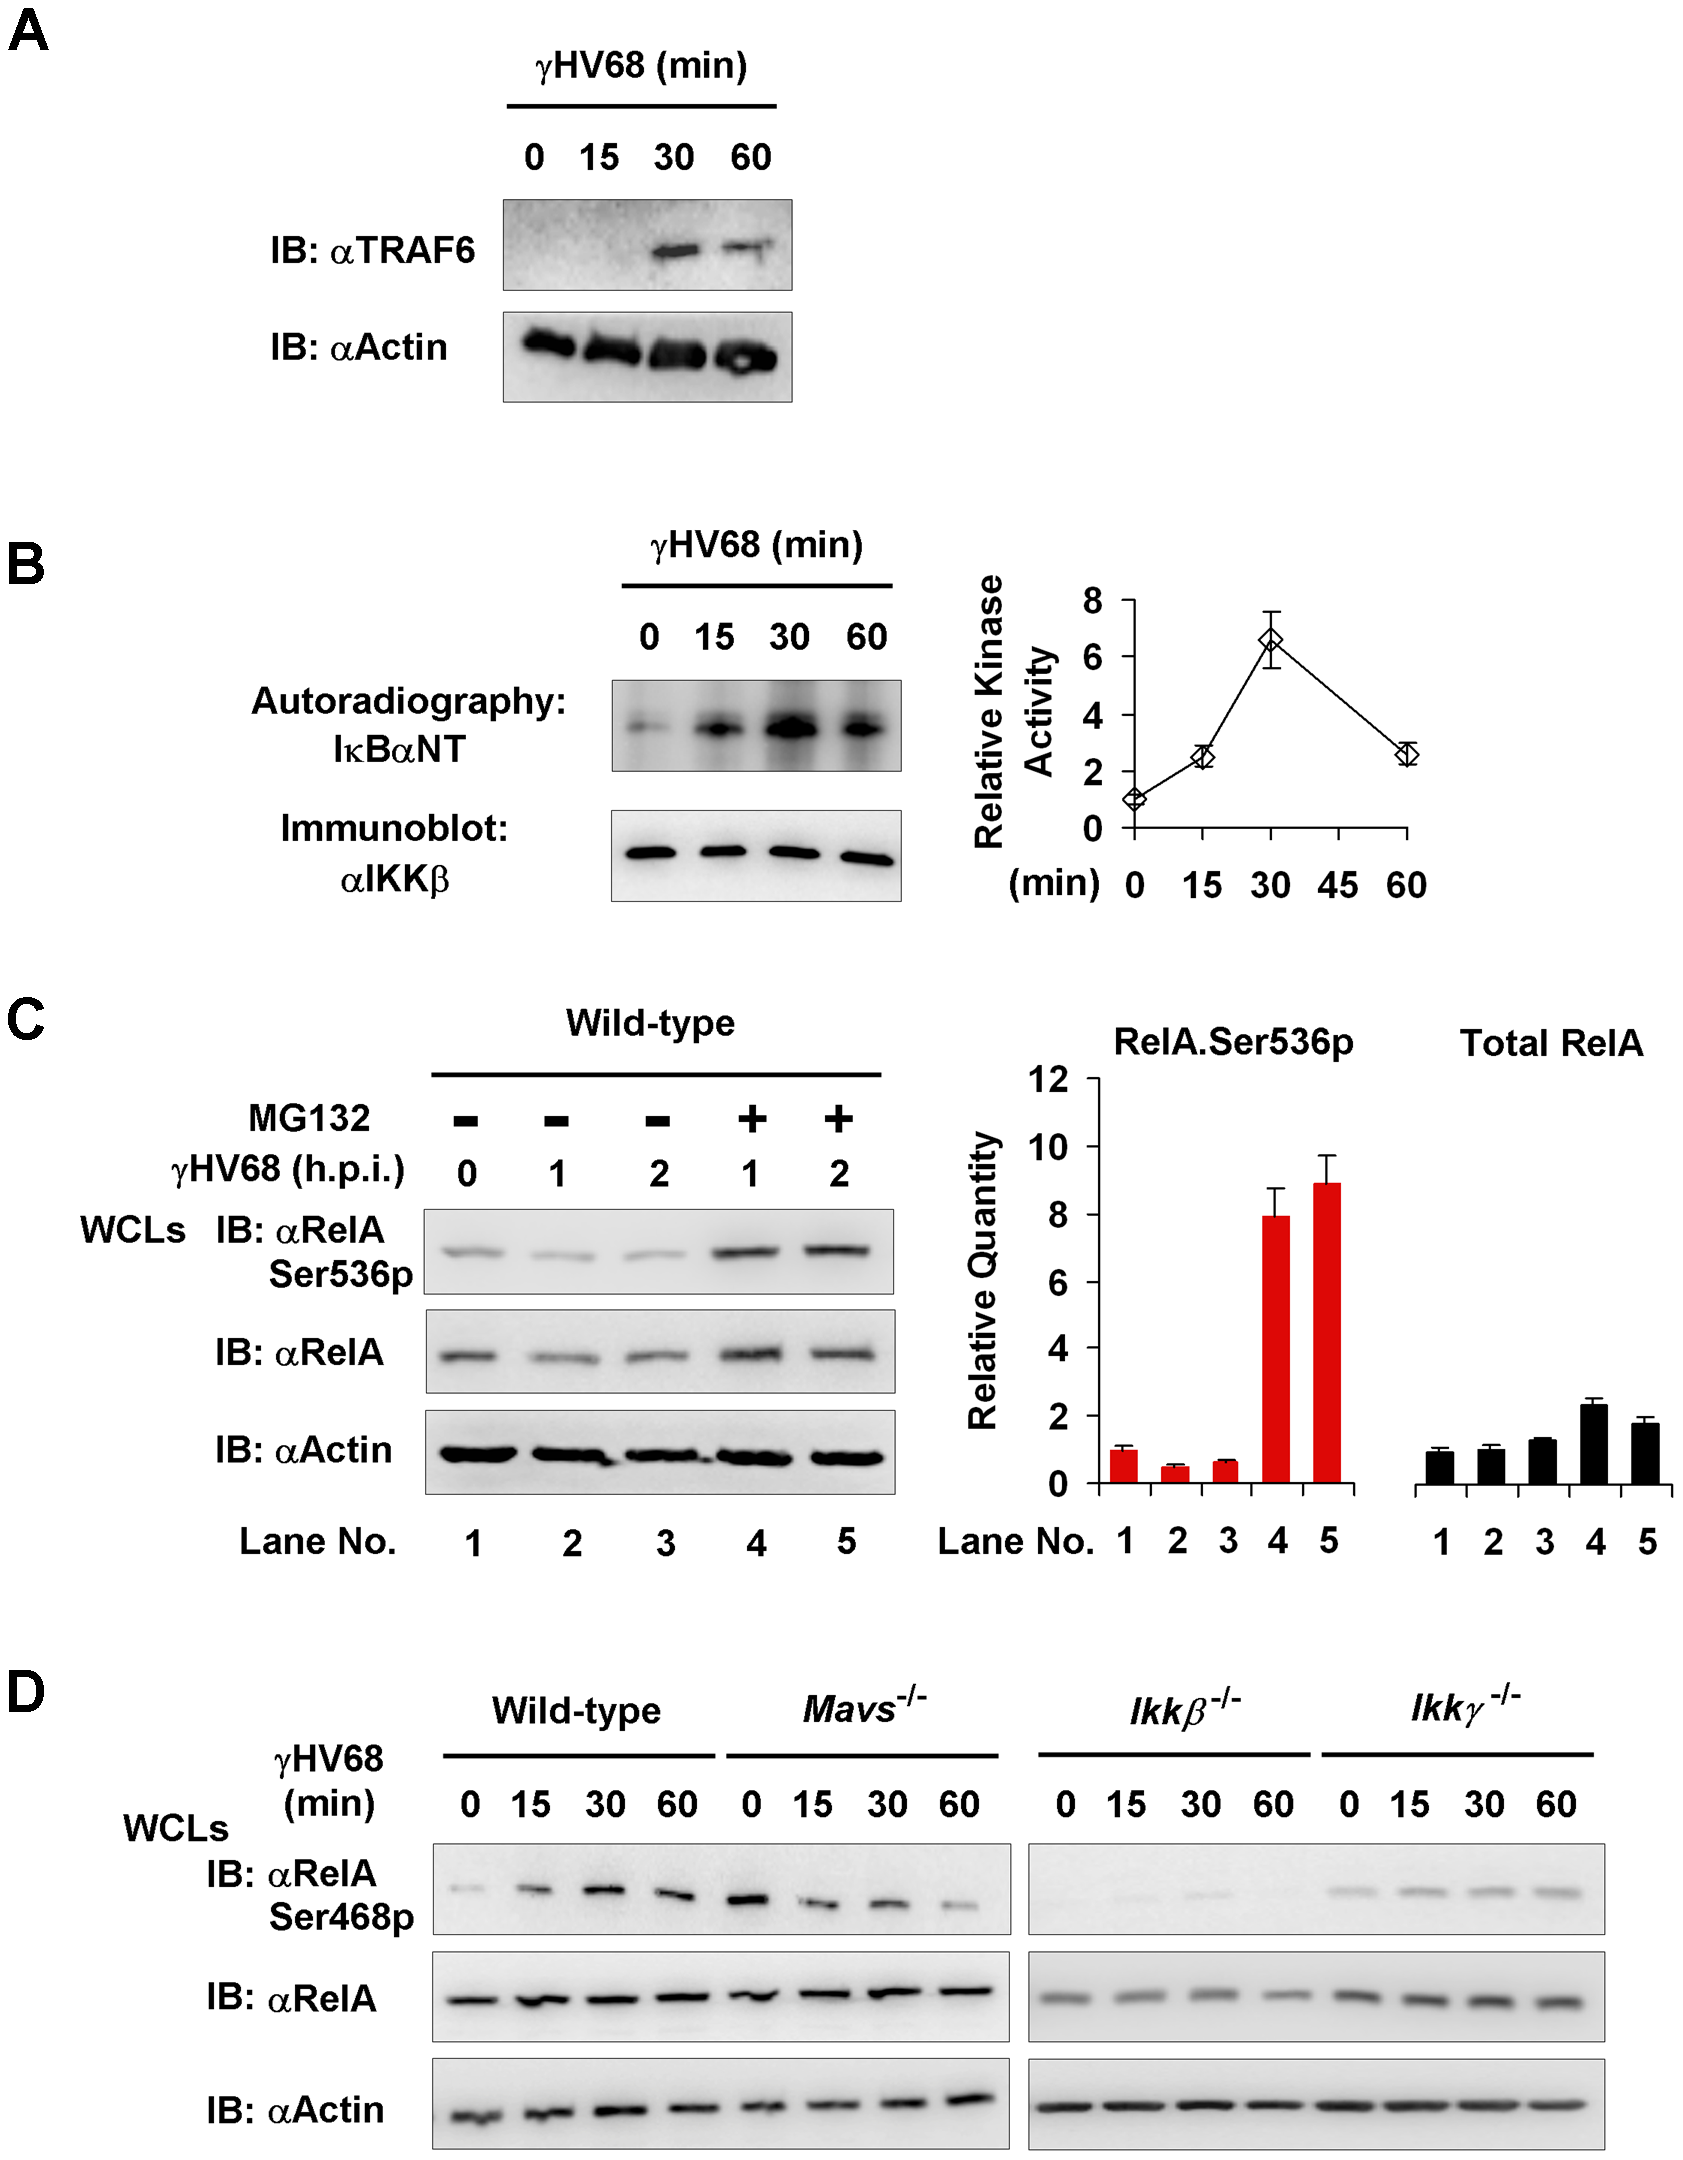 MAVS and IKKβ are important for γHV68-induced RelA phosphorylation at serine 468.